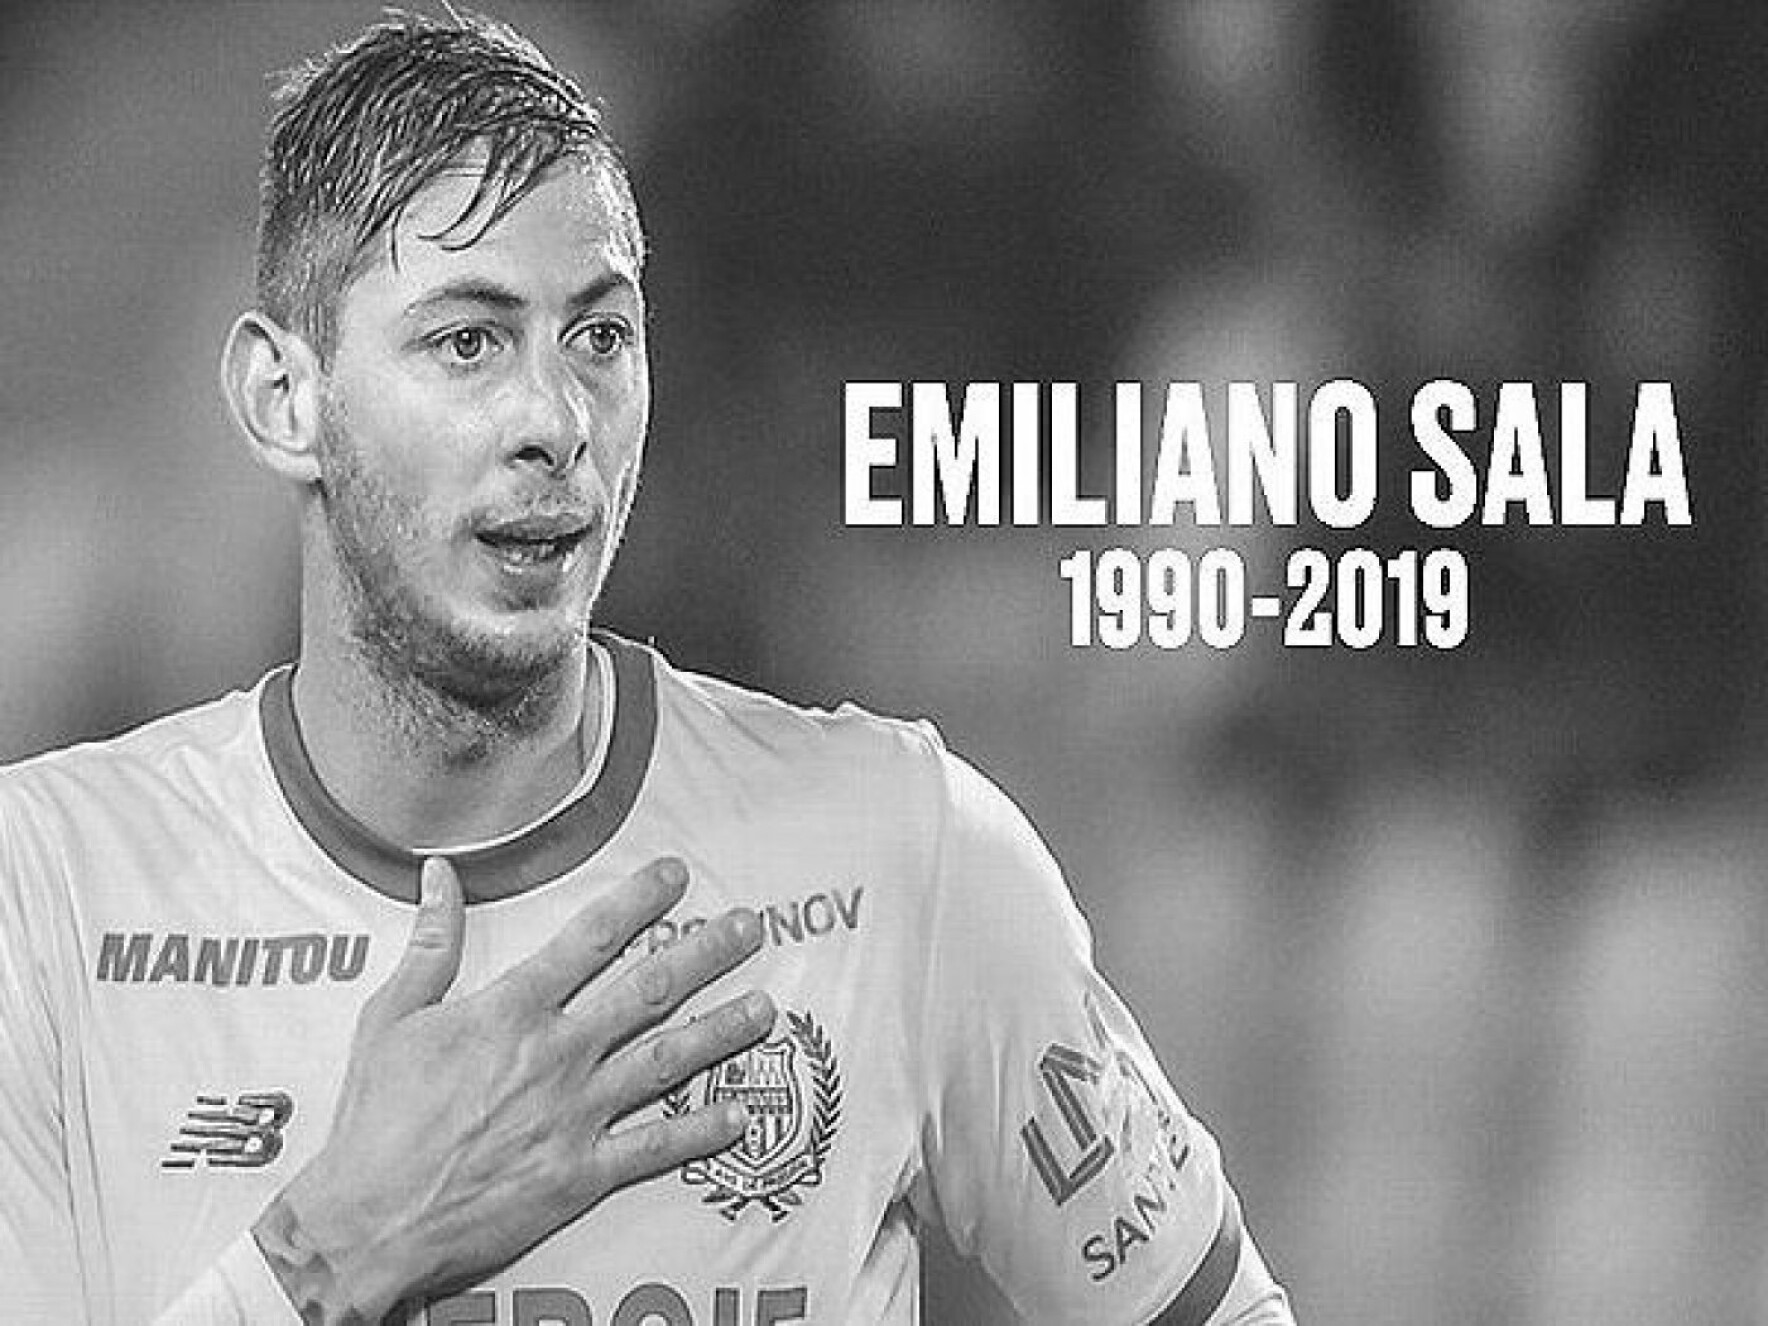 BREAKING: Body found in the wreckage identified as that of Emiliano Sala